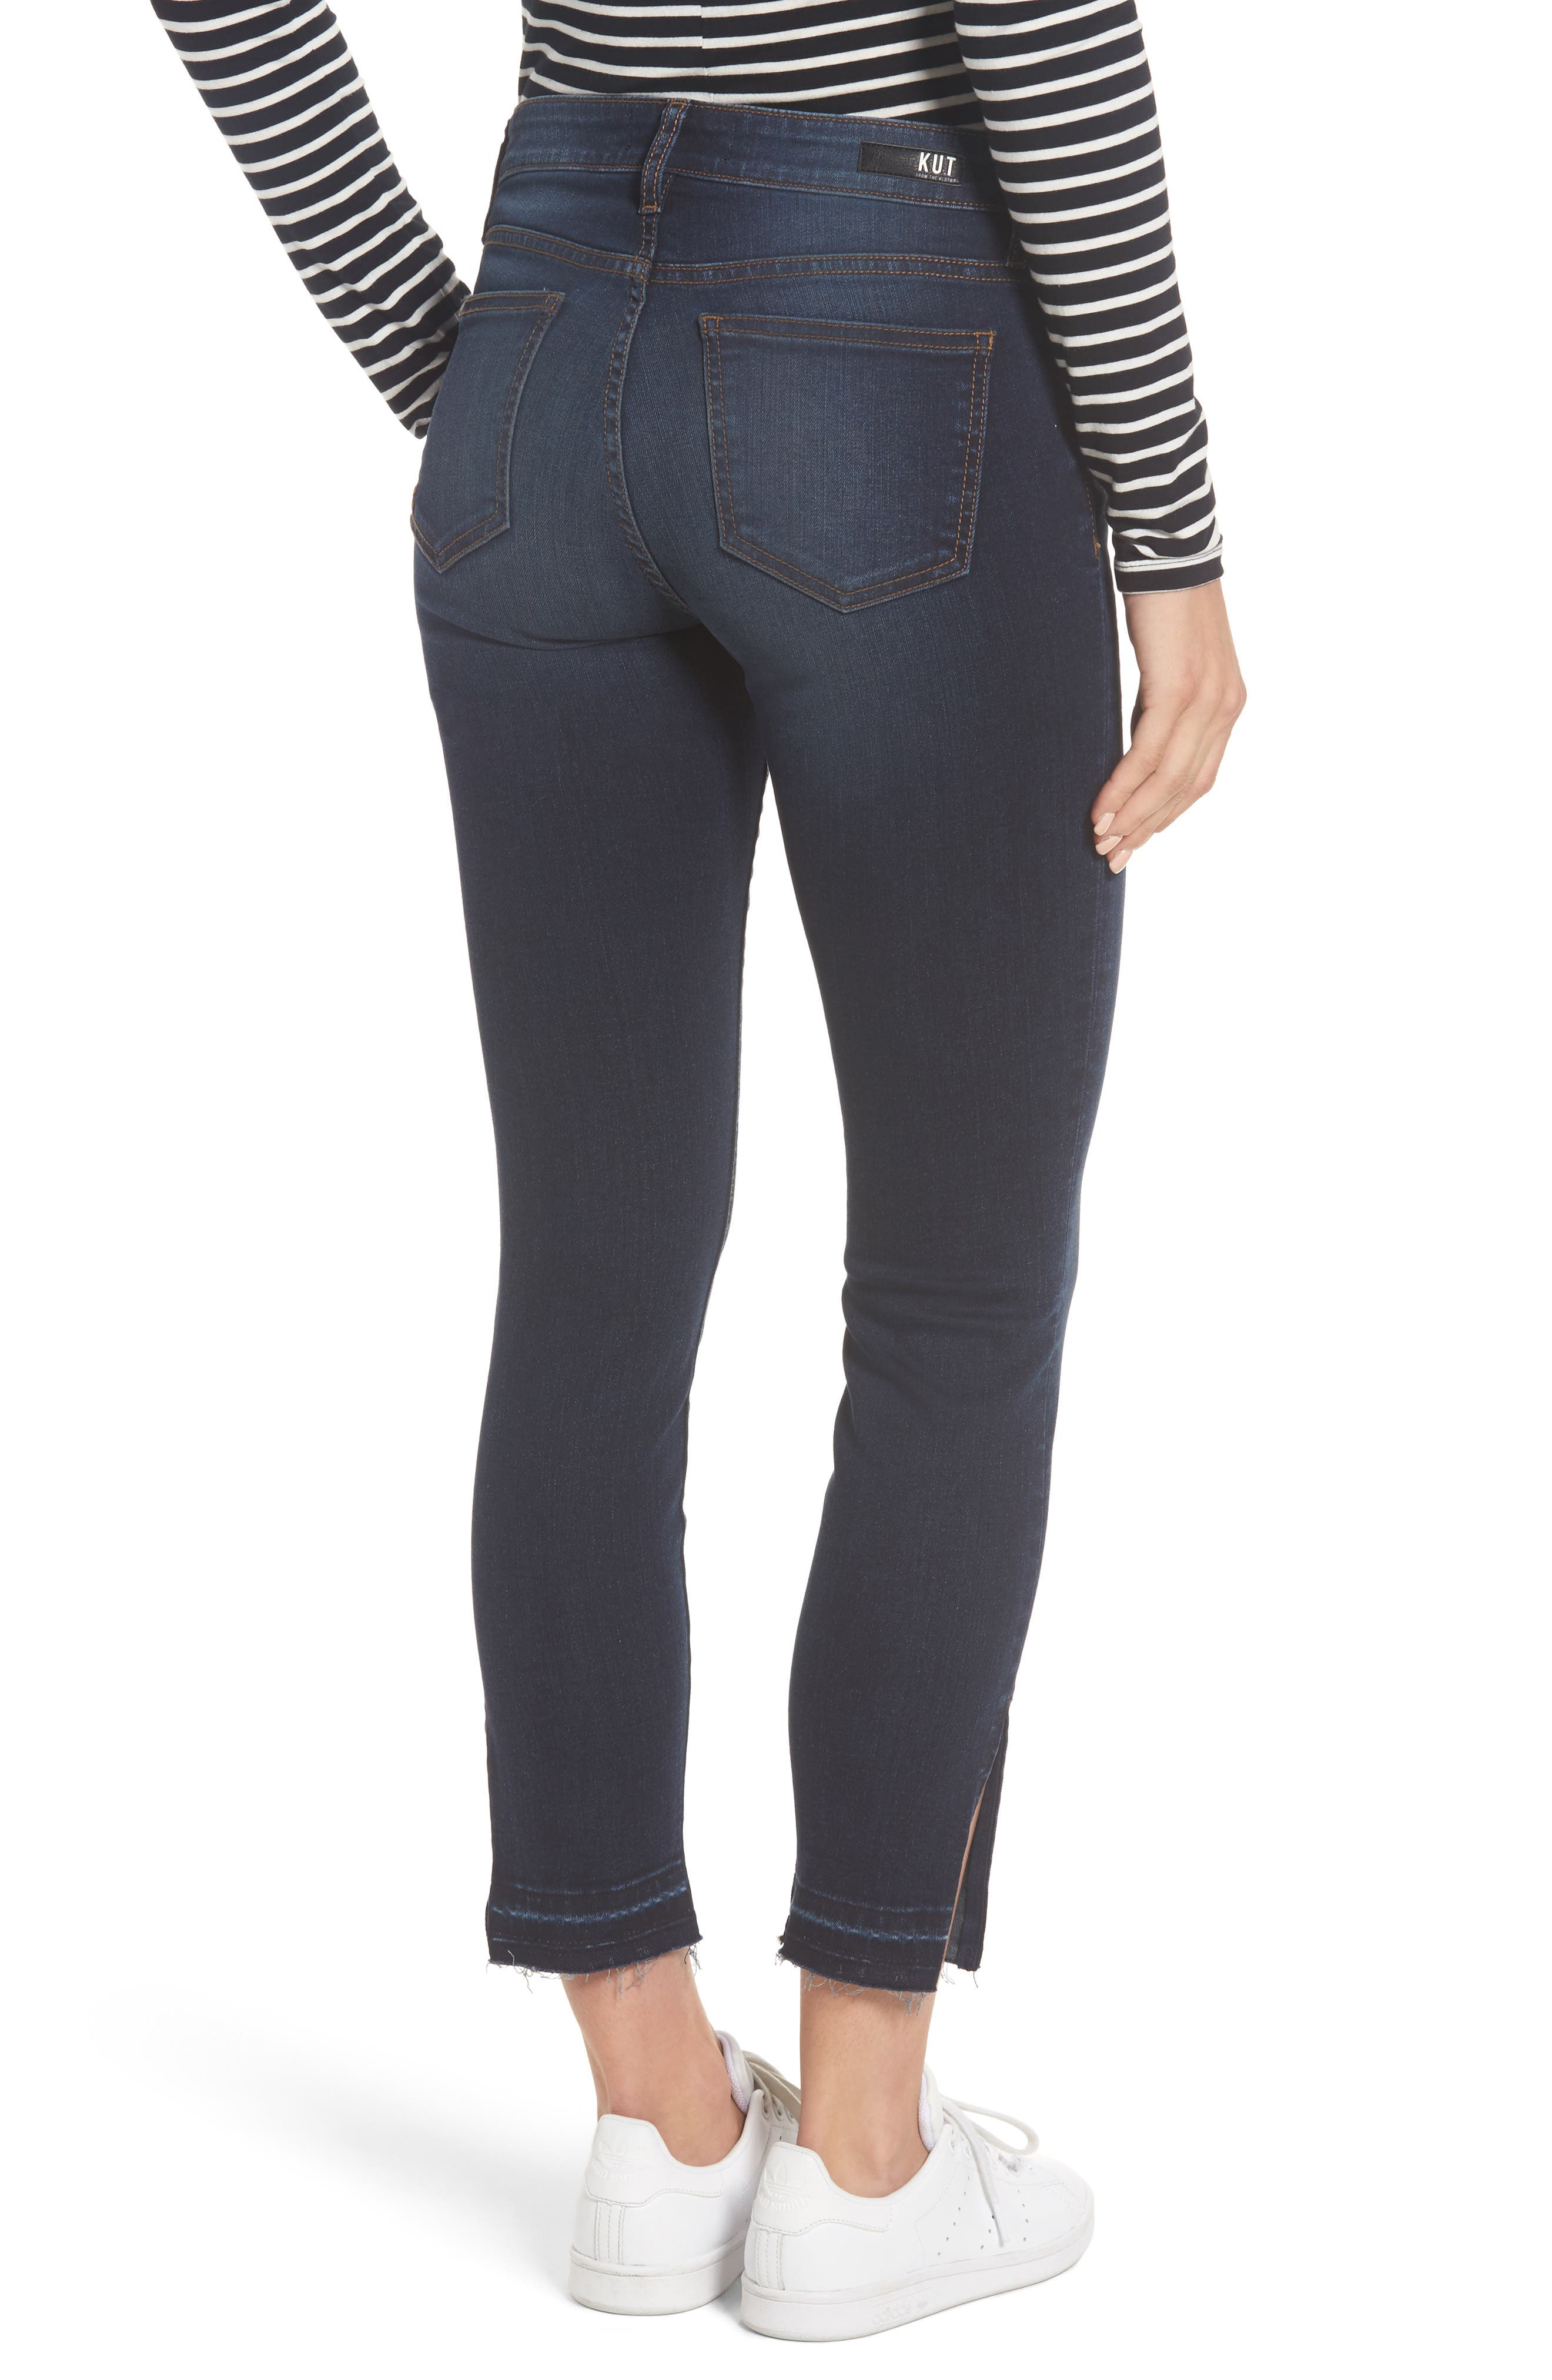 Connie Release Hem Ankle Skinny Jeans,                             Alternate thumbnail 2, color,                             431